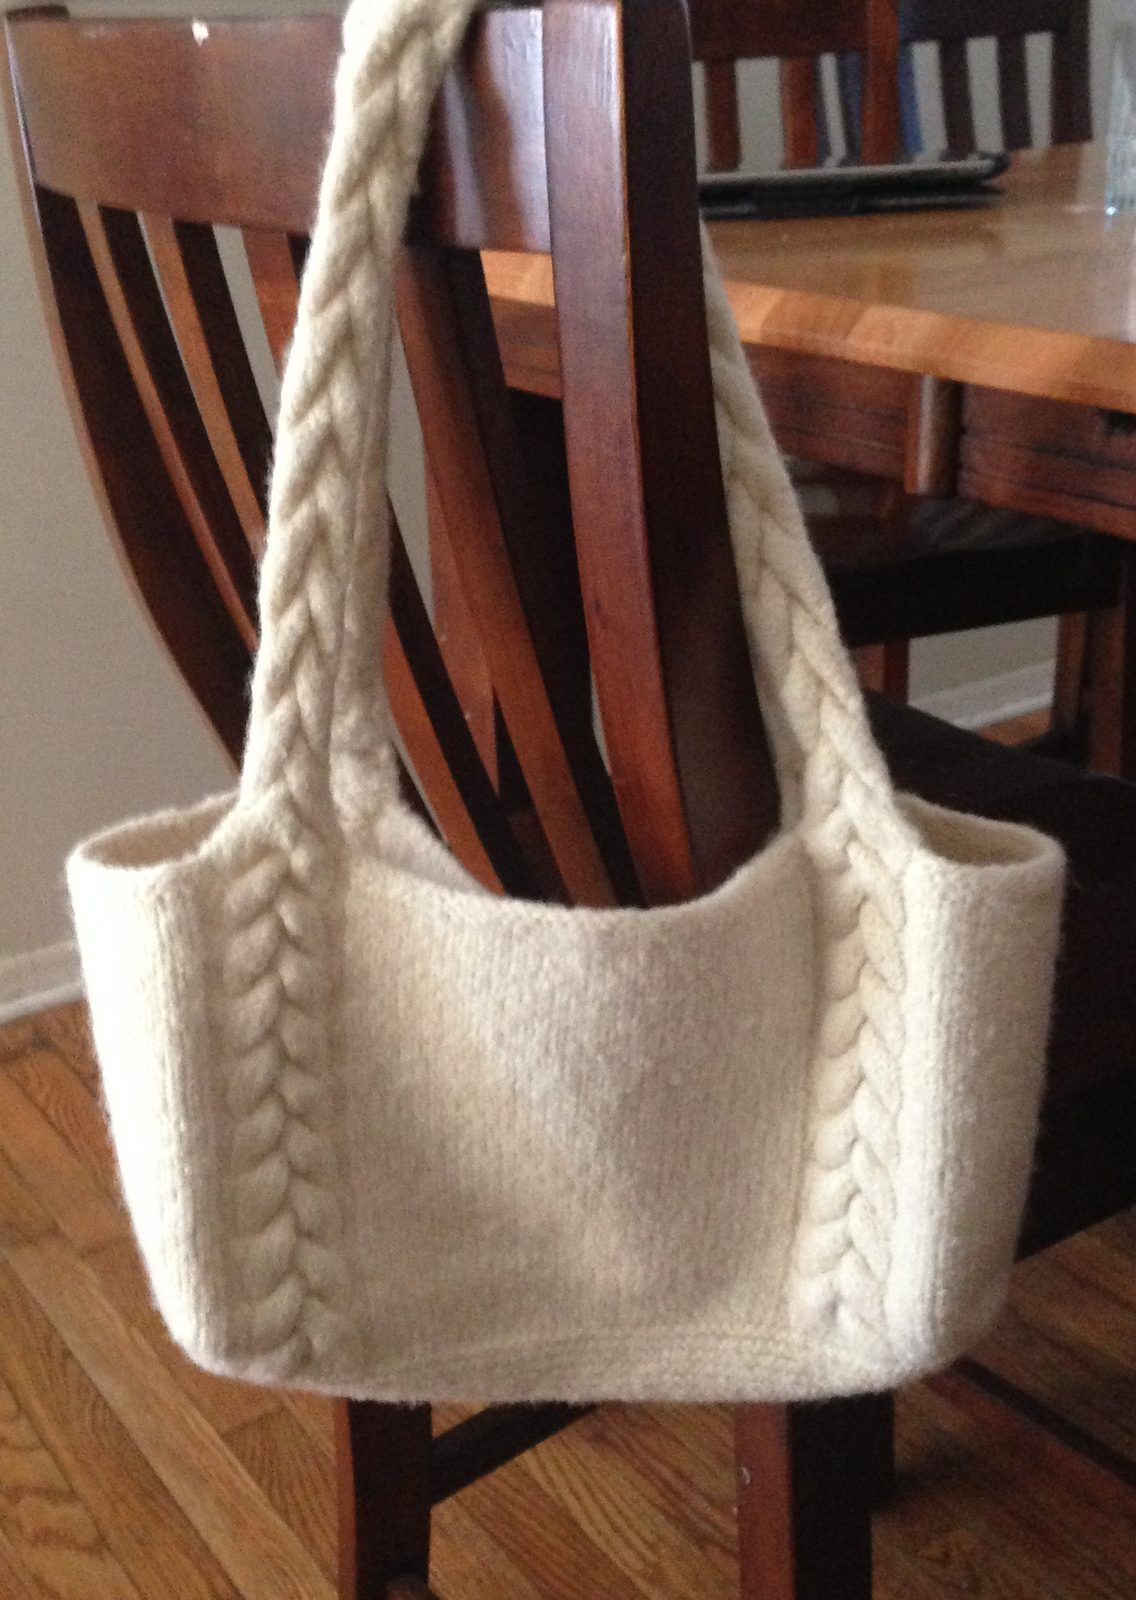 Free Knitting Pattern Braided Cable Handle Tote - This easy pattern is  available in three sizes. Amanda Silveira s pattern features braided cables  that ... 6610987cde47